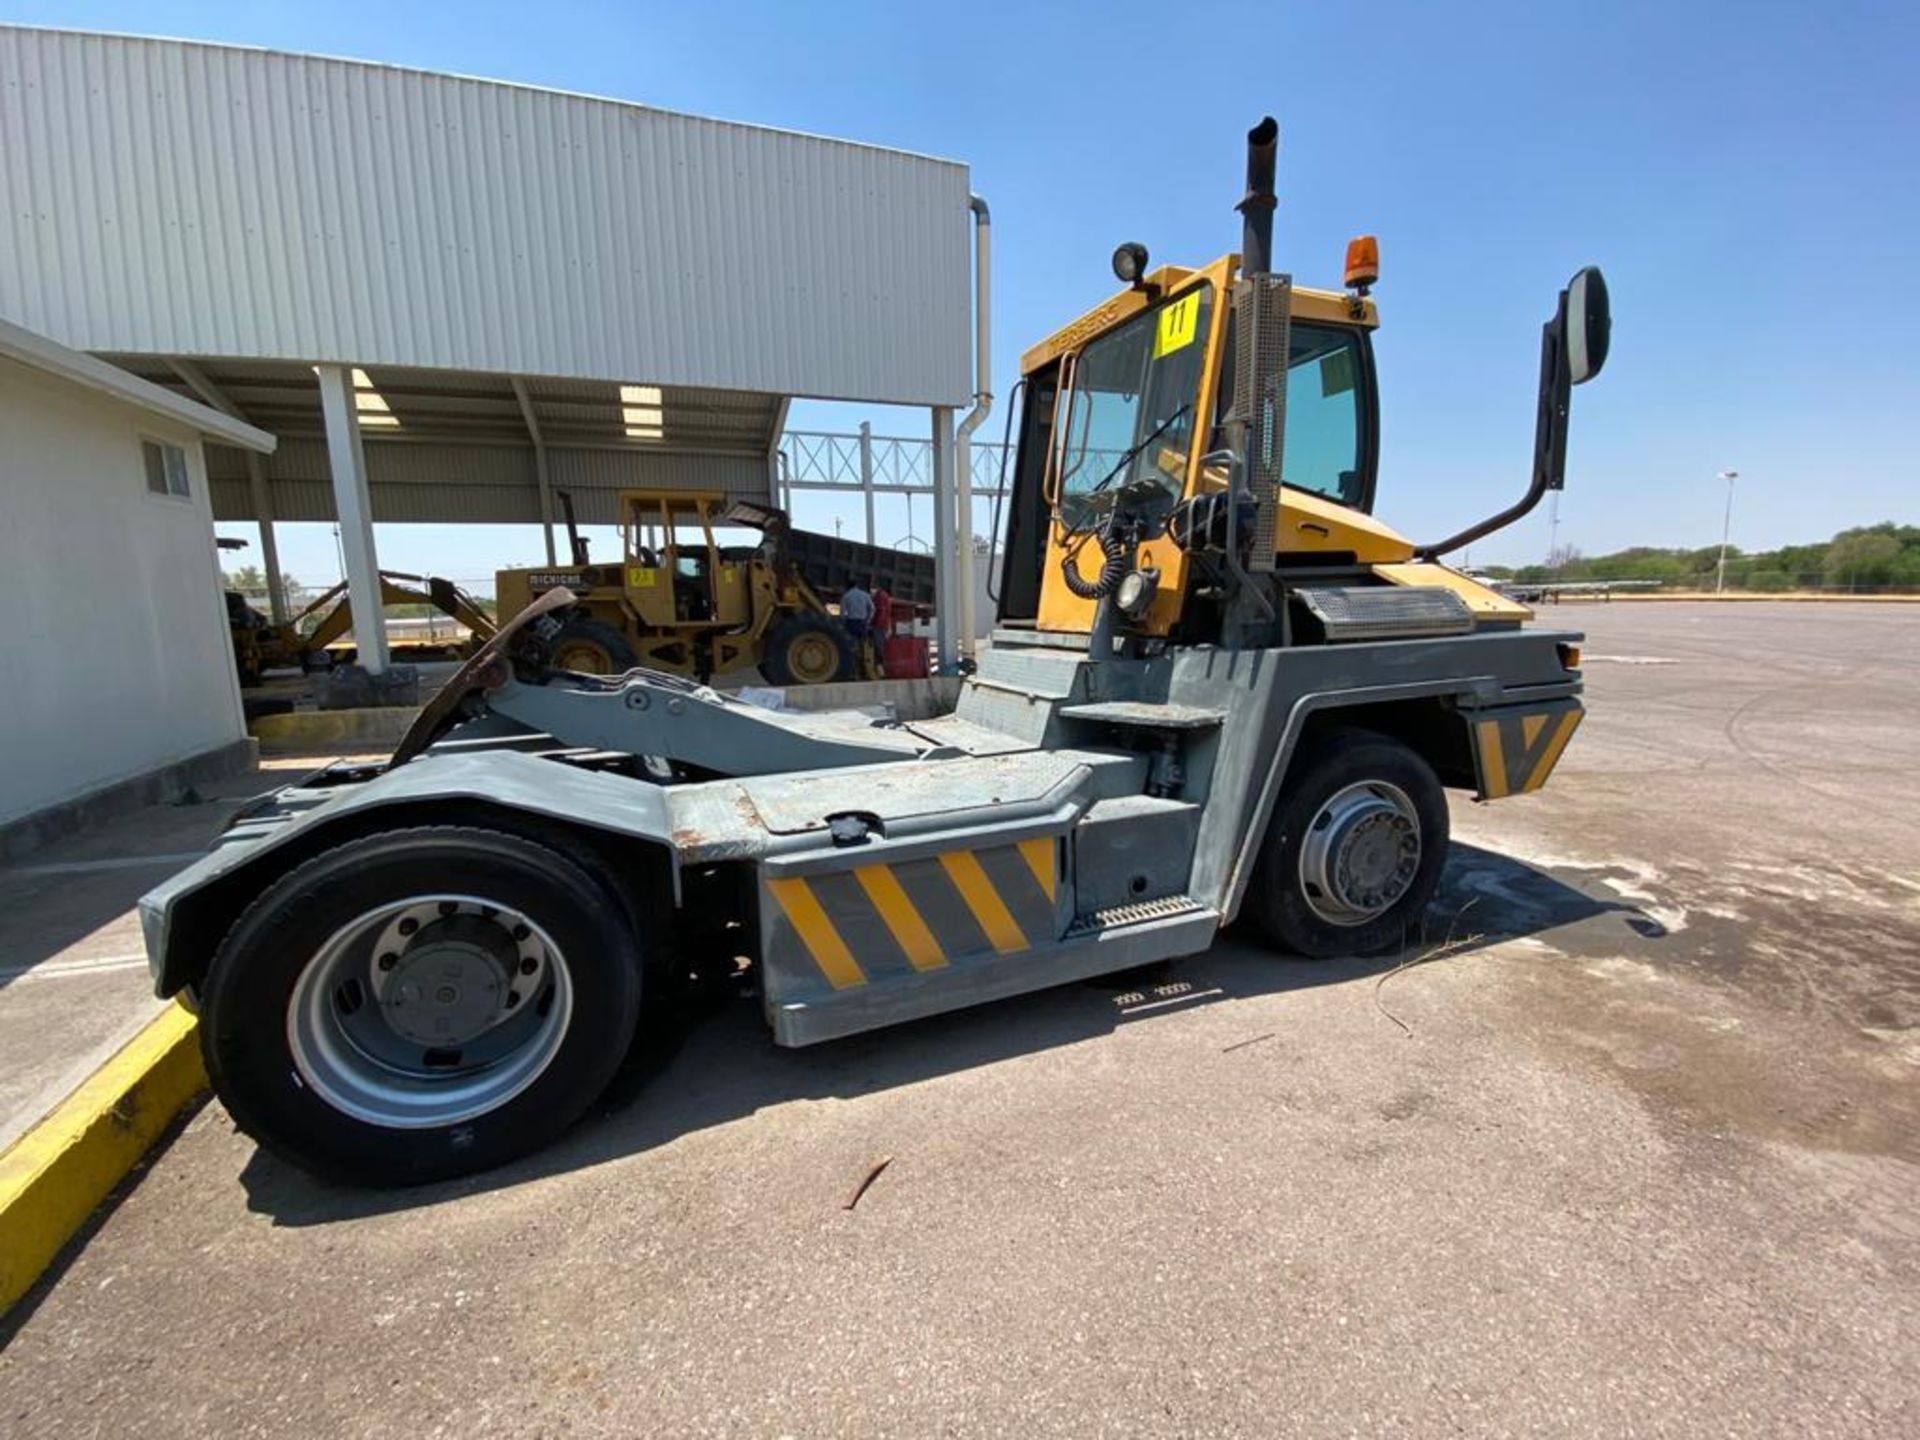 Terberg Capacity 2002 Terminal Tractor, automatic transmission - Image 17 of 57